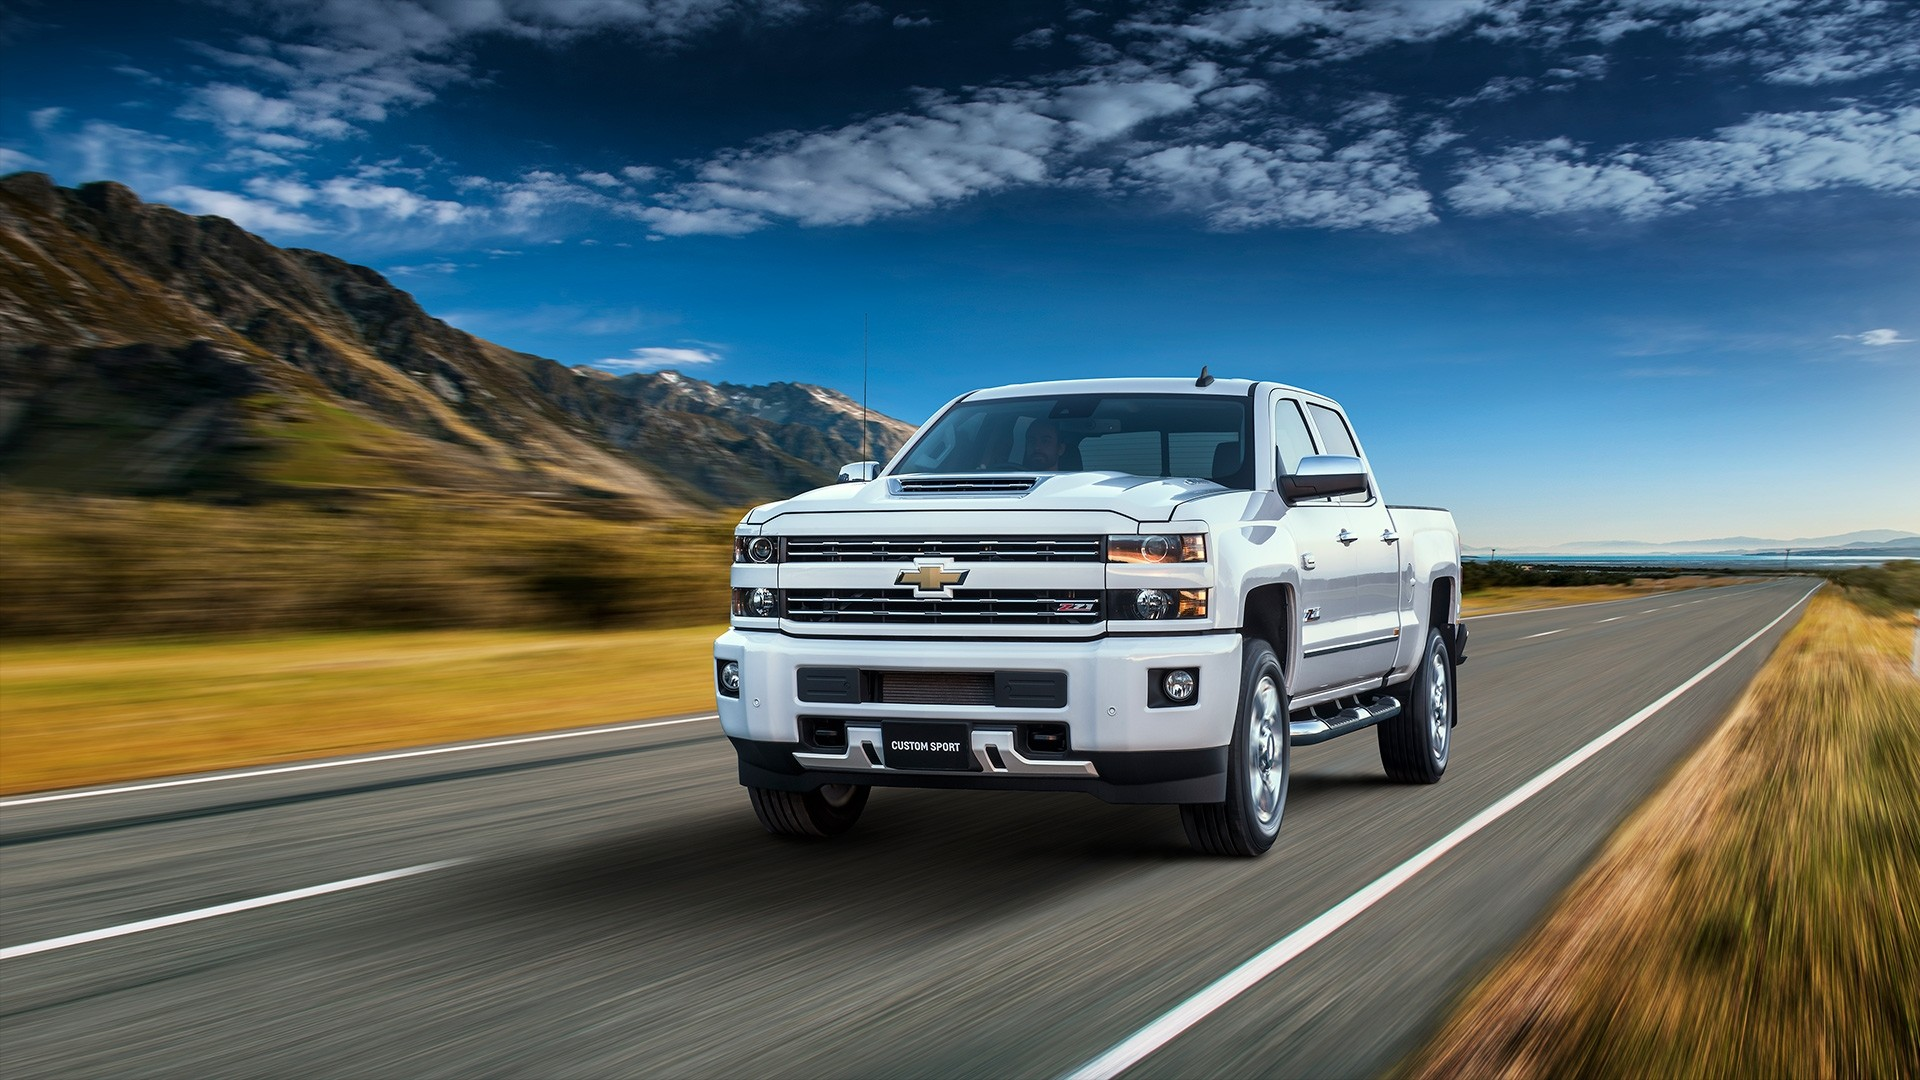 Silverado download nice wallpaper